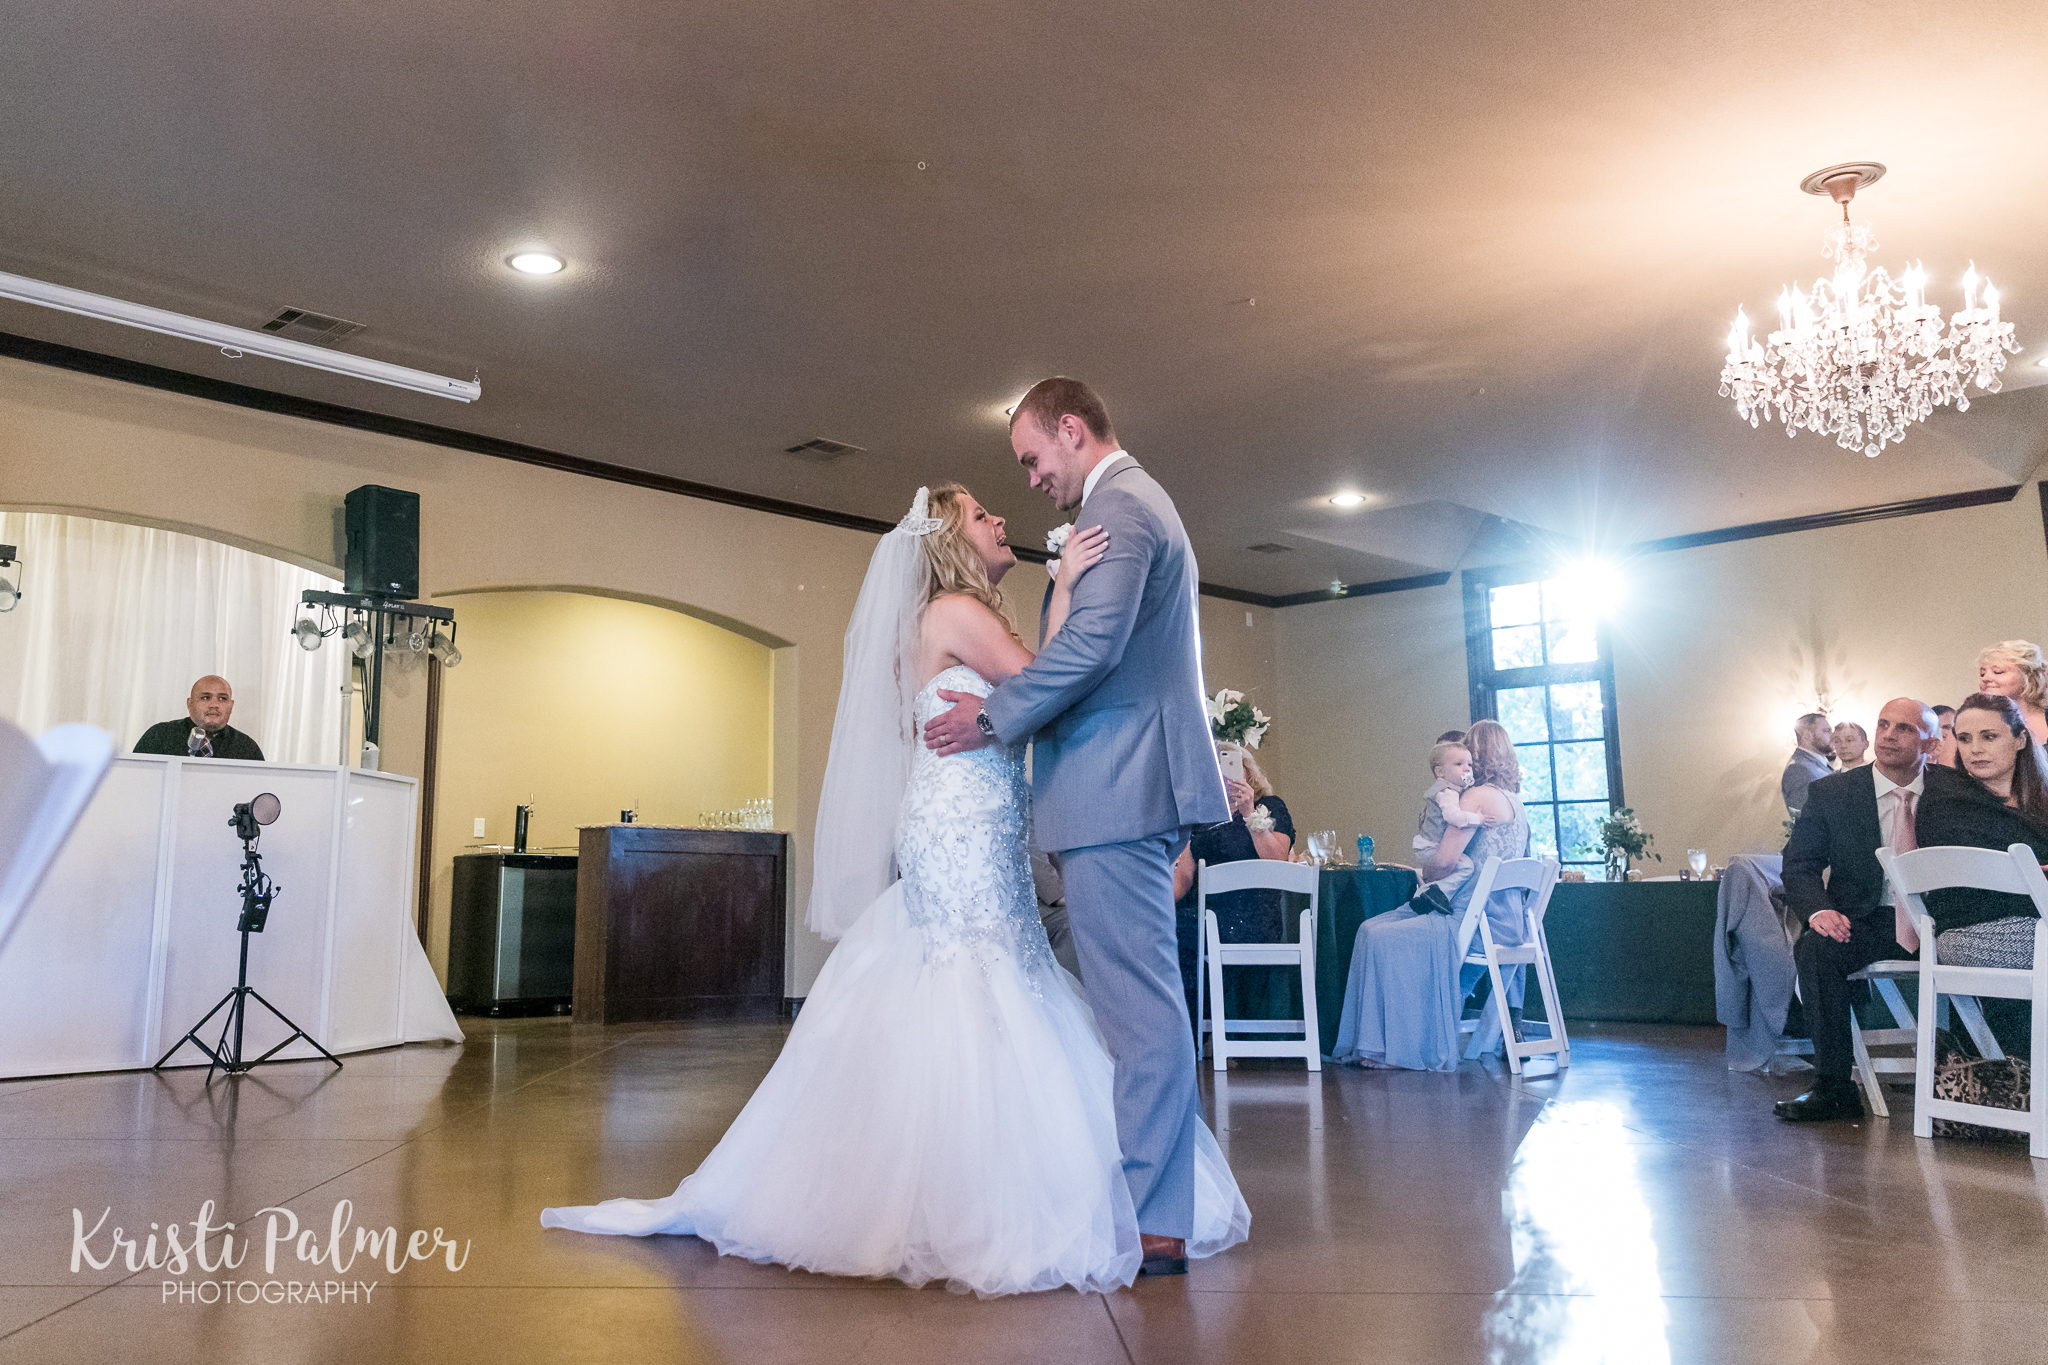 BarretWeddingSM-247.jpg